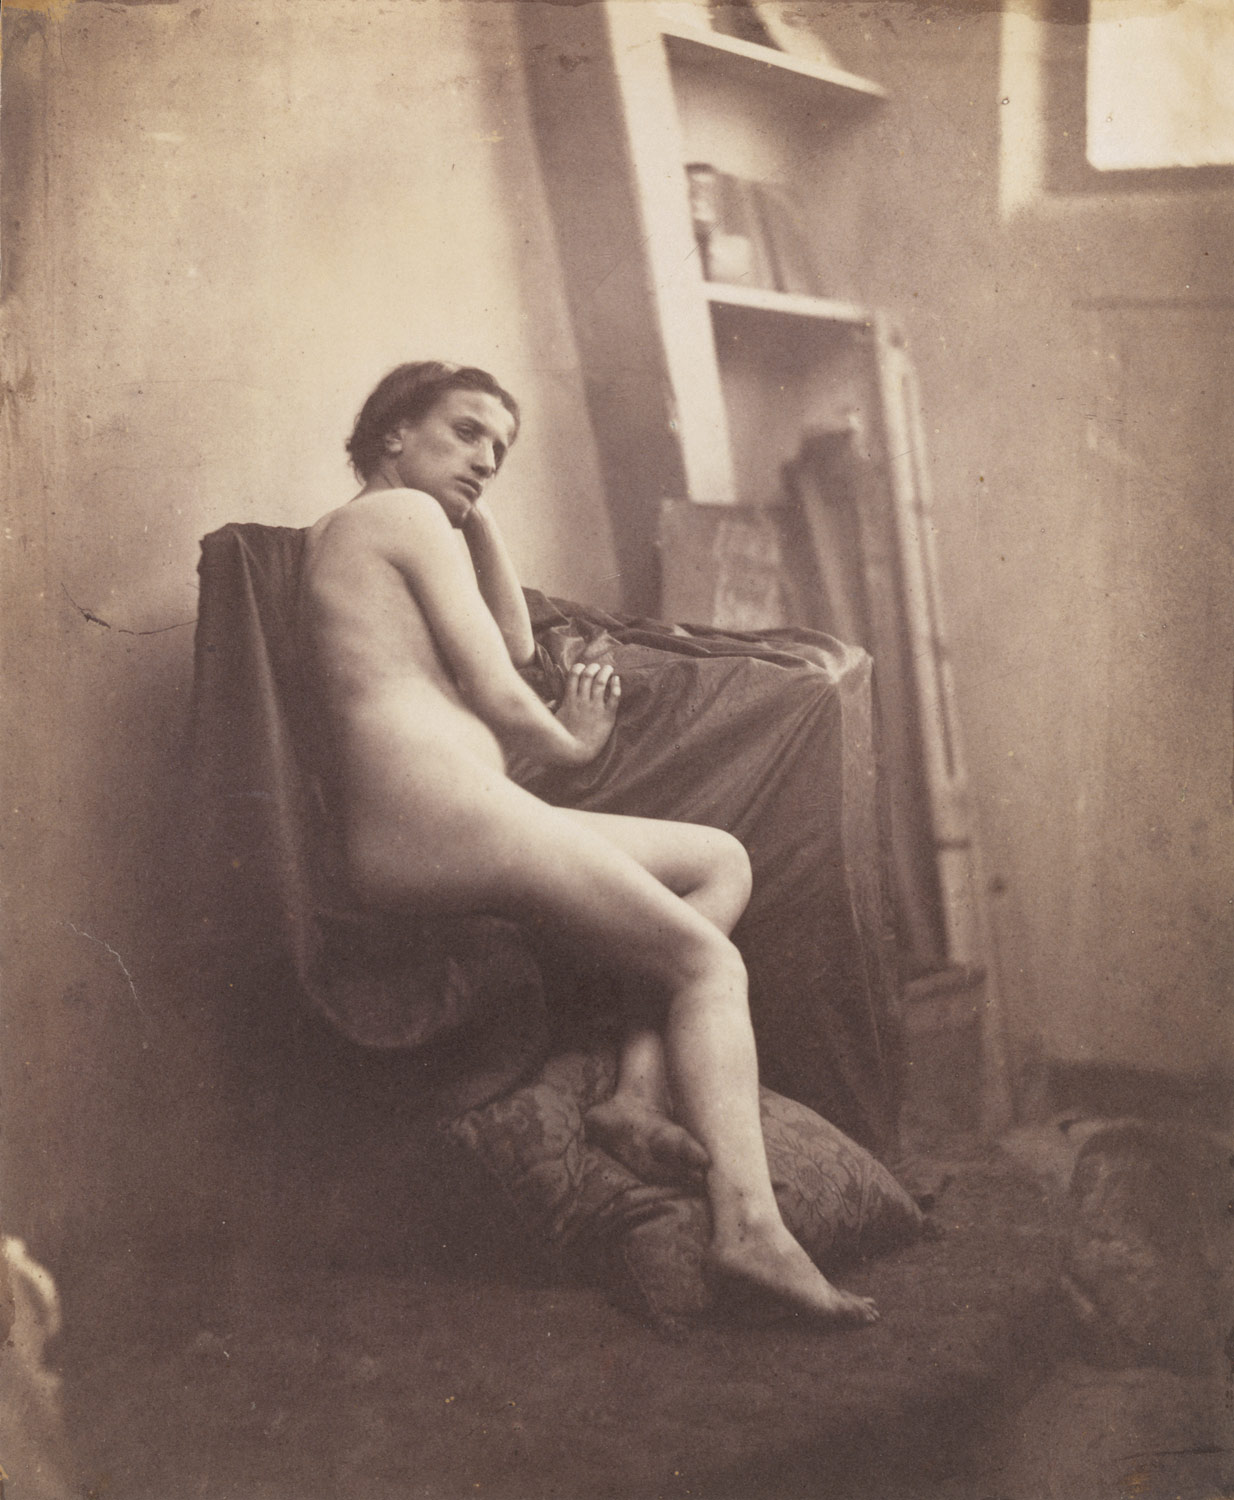 Amateur photographer nude studies